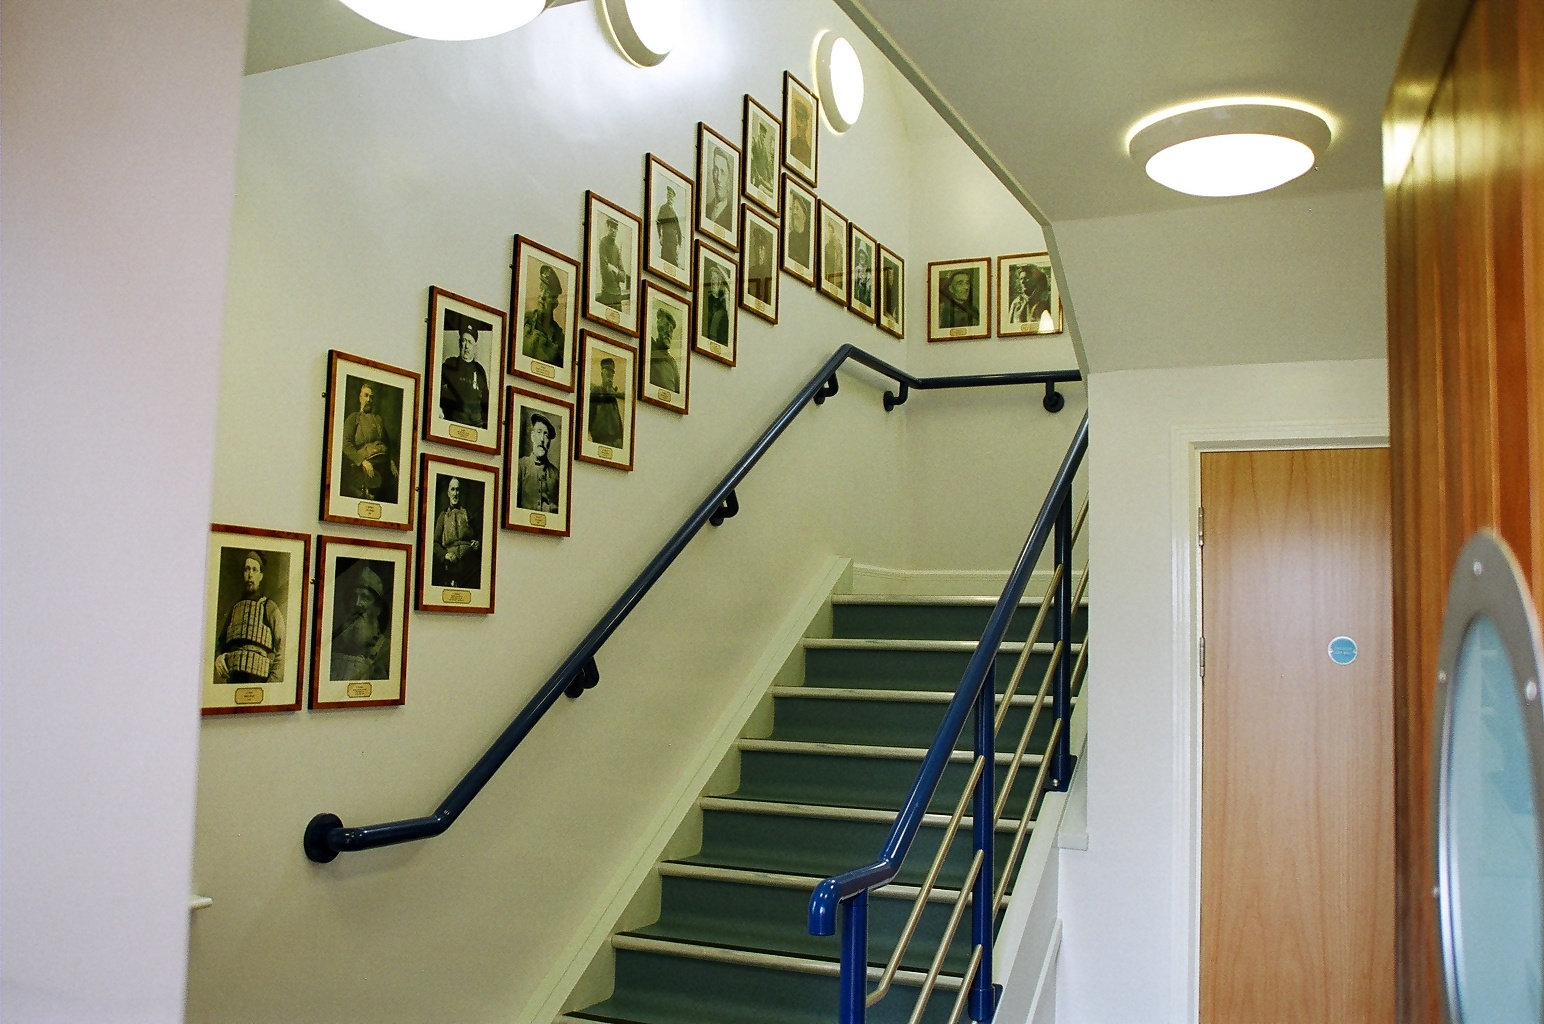 The Staircase Of Honour